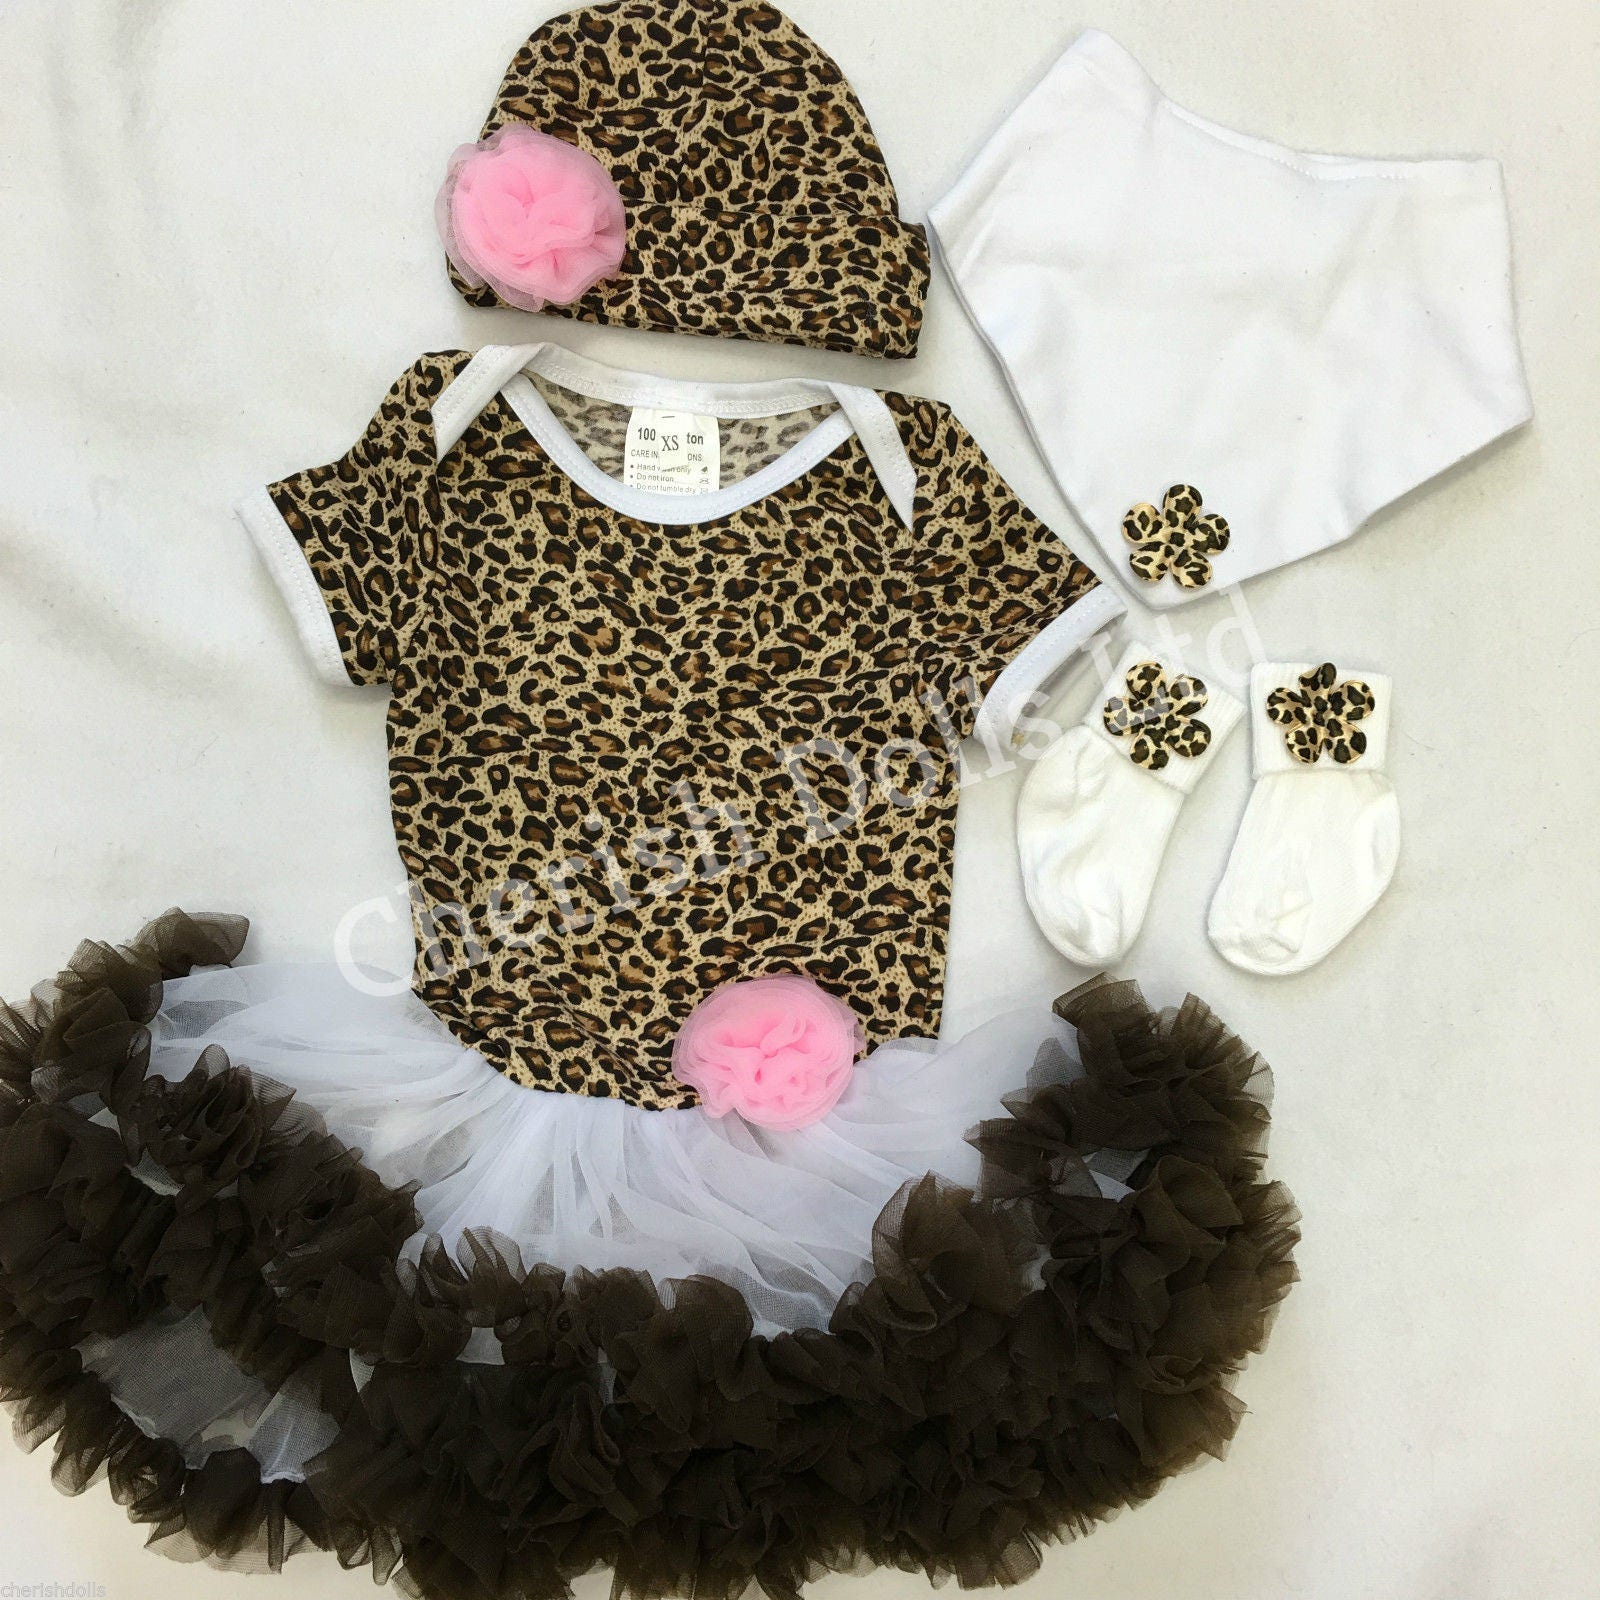 Reborn doll clothing leopard print tutu 22 hat bib socks